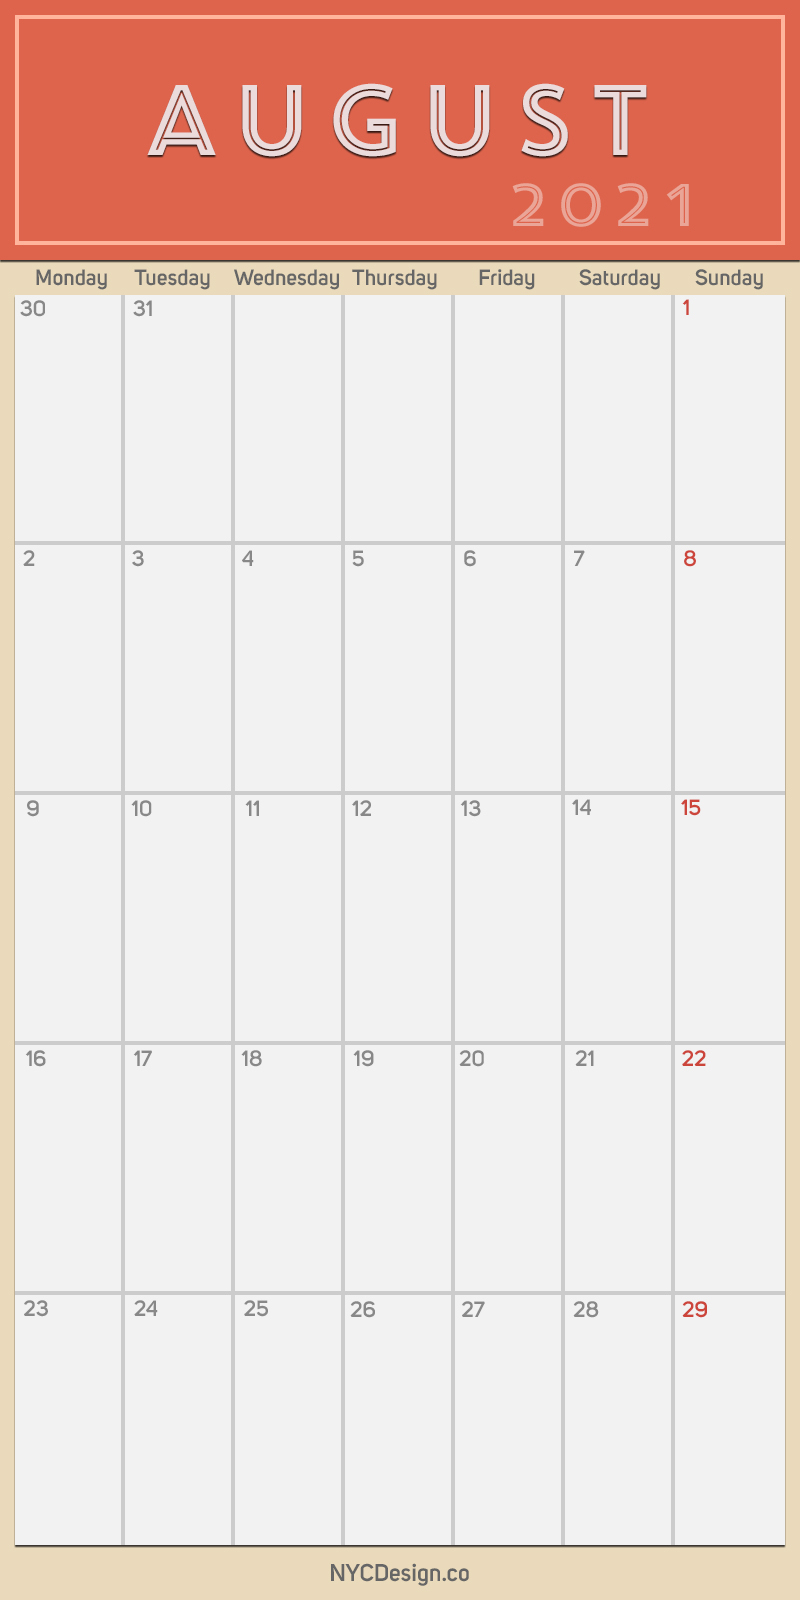 2021 August  Monthly Calendar With Holidays, Printable pertaining to Free Calendar Template August 2021